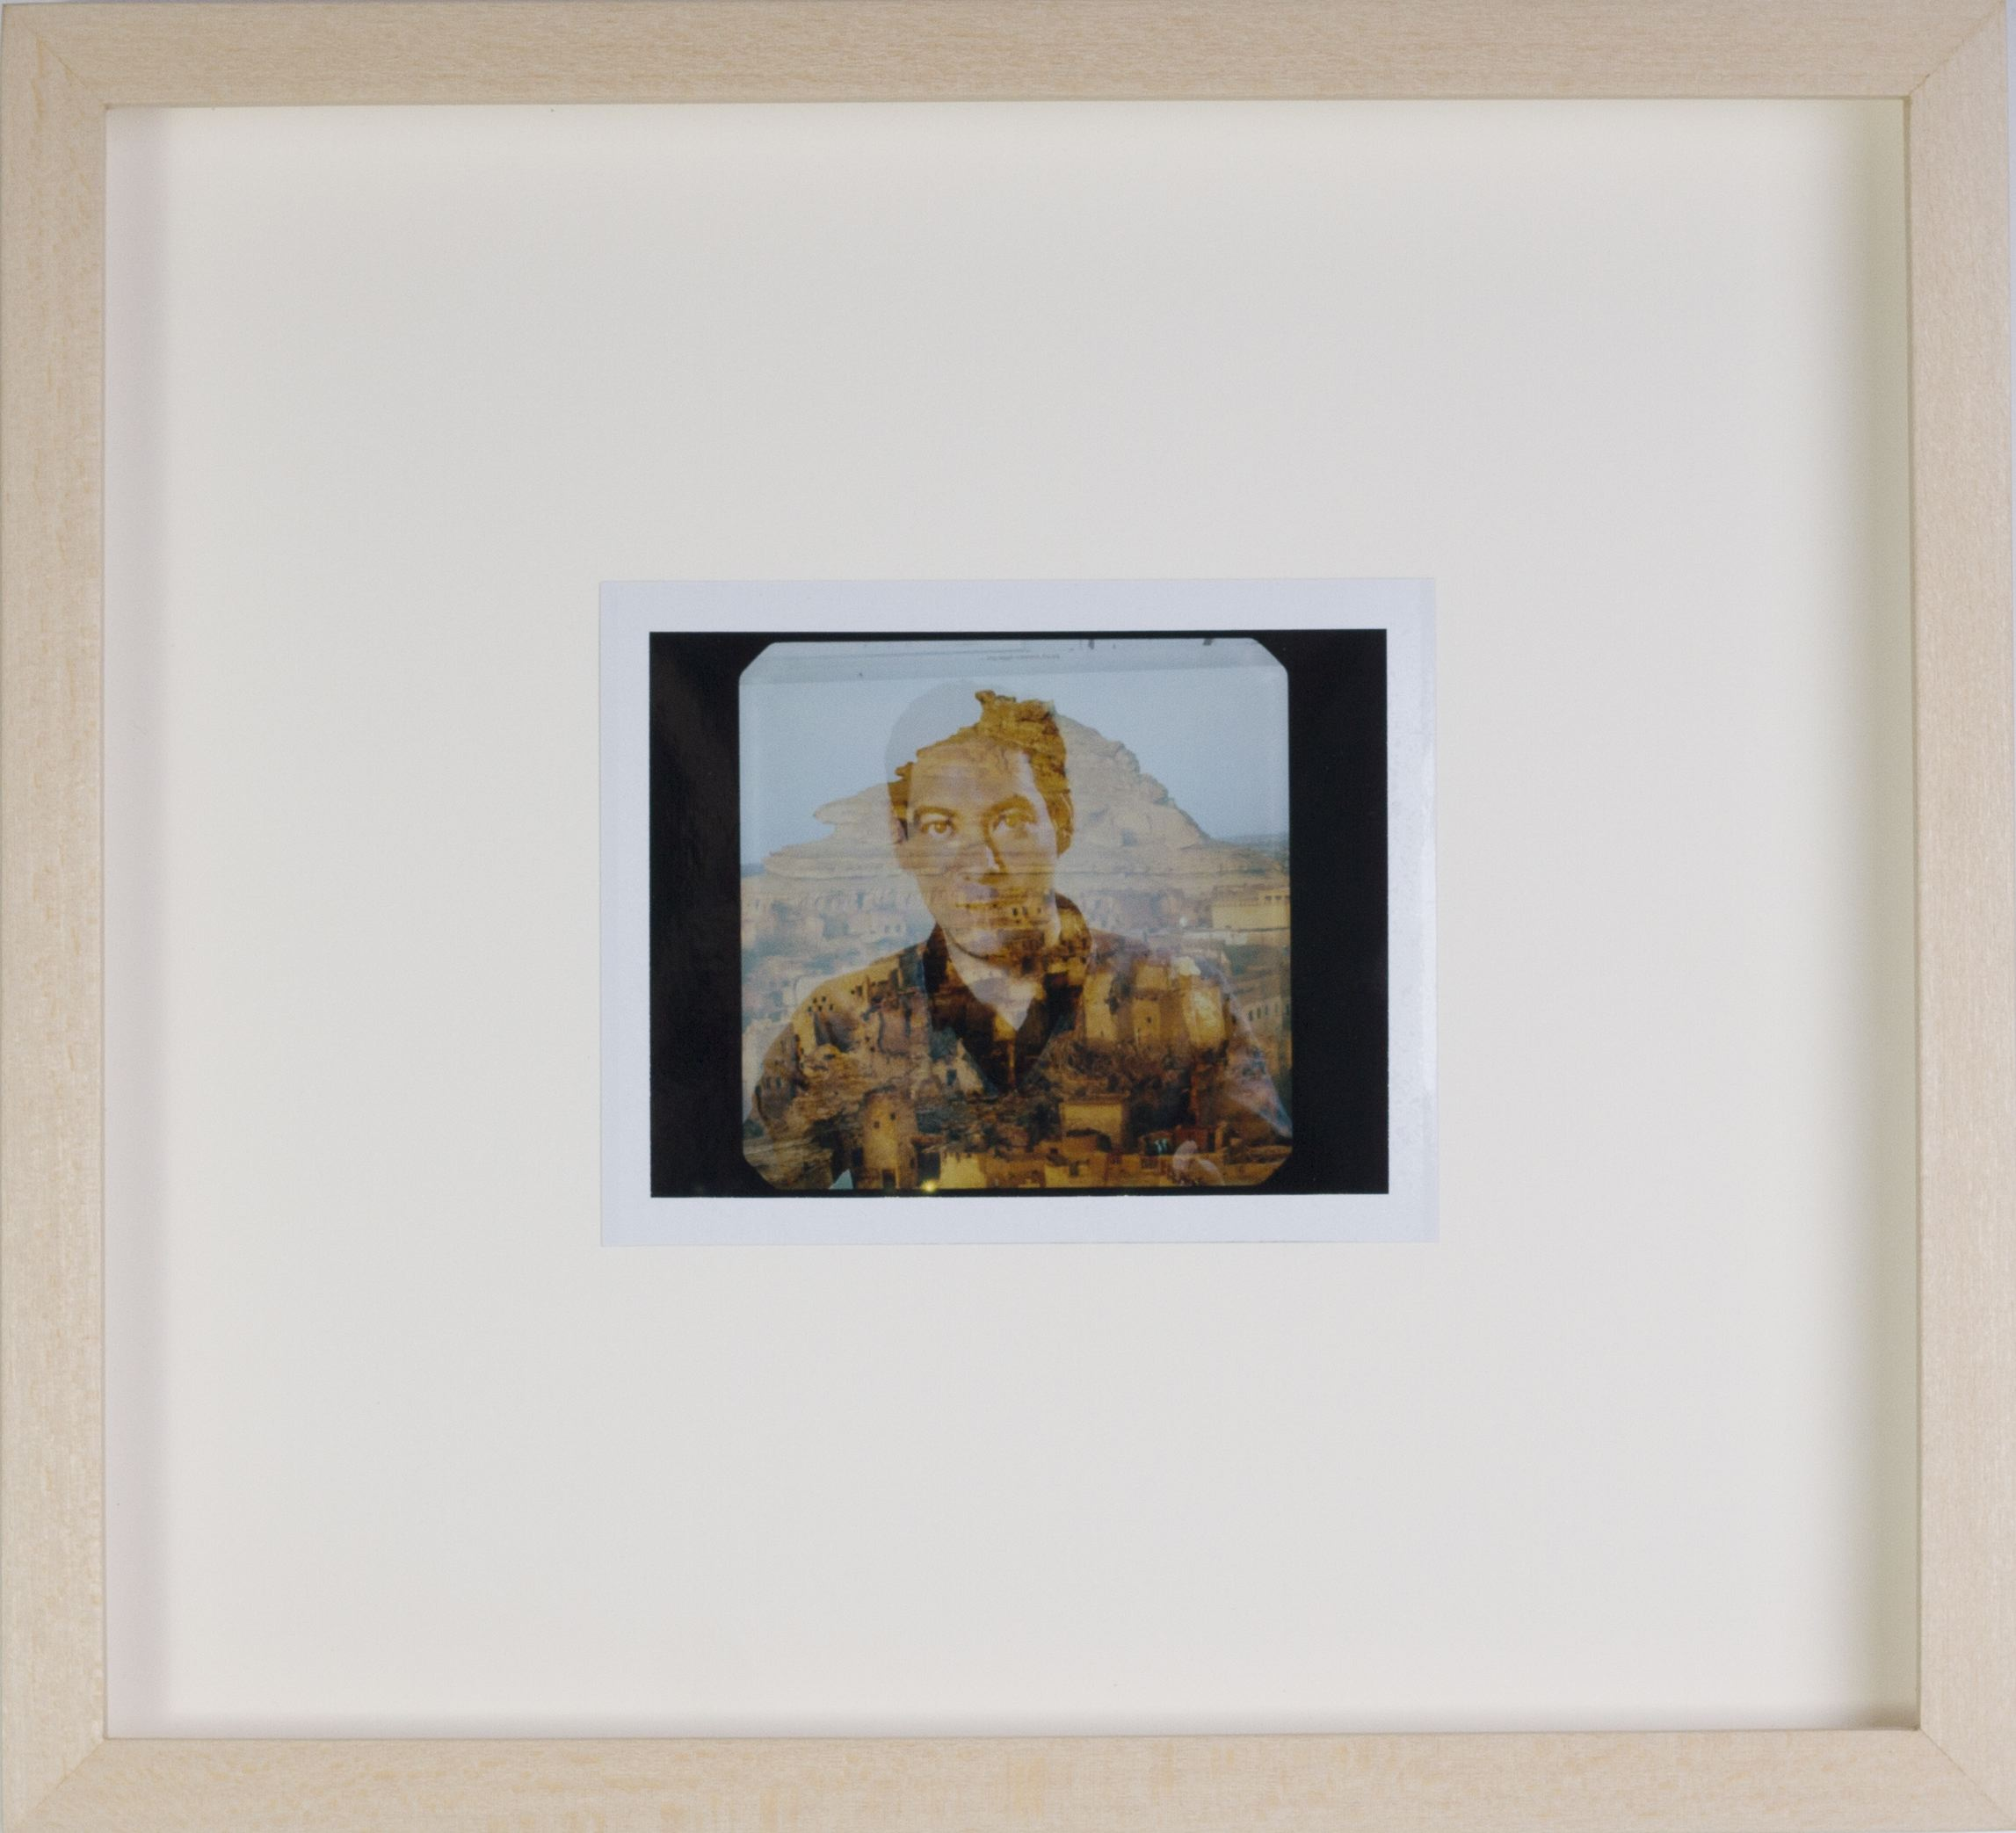 Tommy Hartung    Our Land , 2016  Polaroid  Framed Dimensions: 9.25 x 10.125in. (23.5 x 25.7cm)